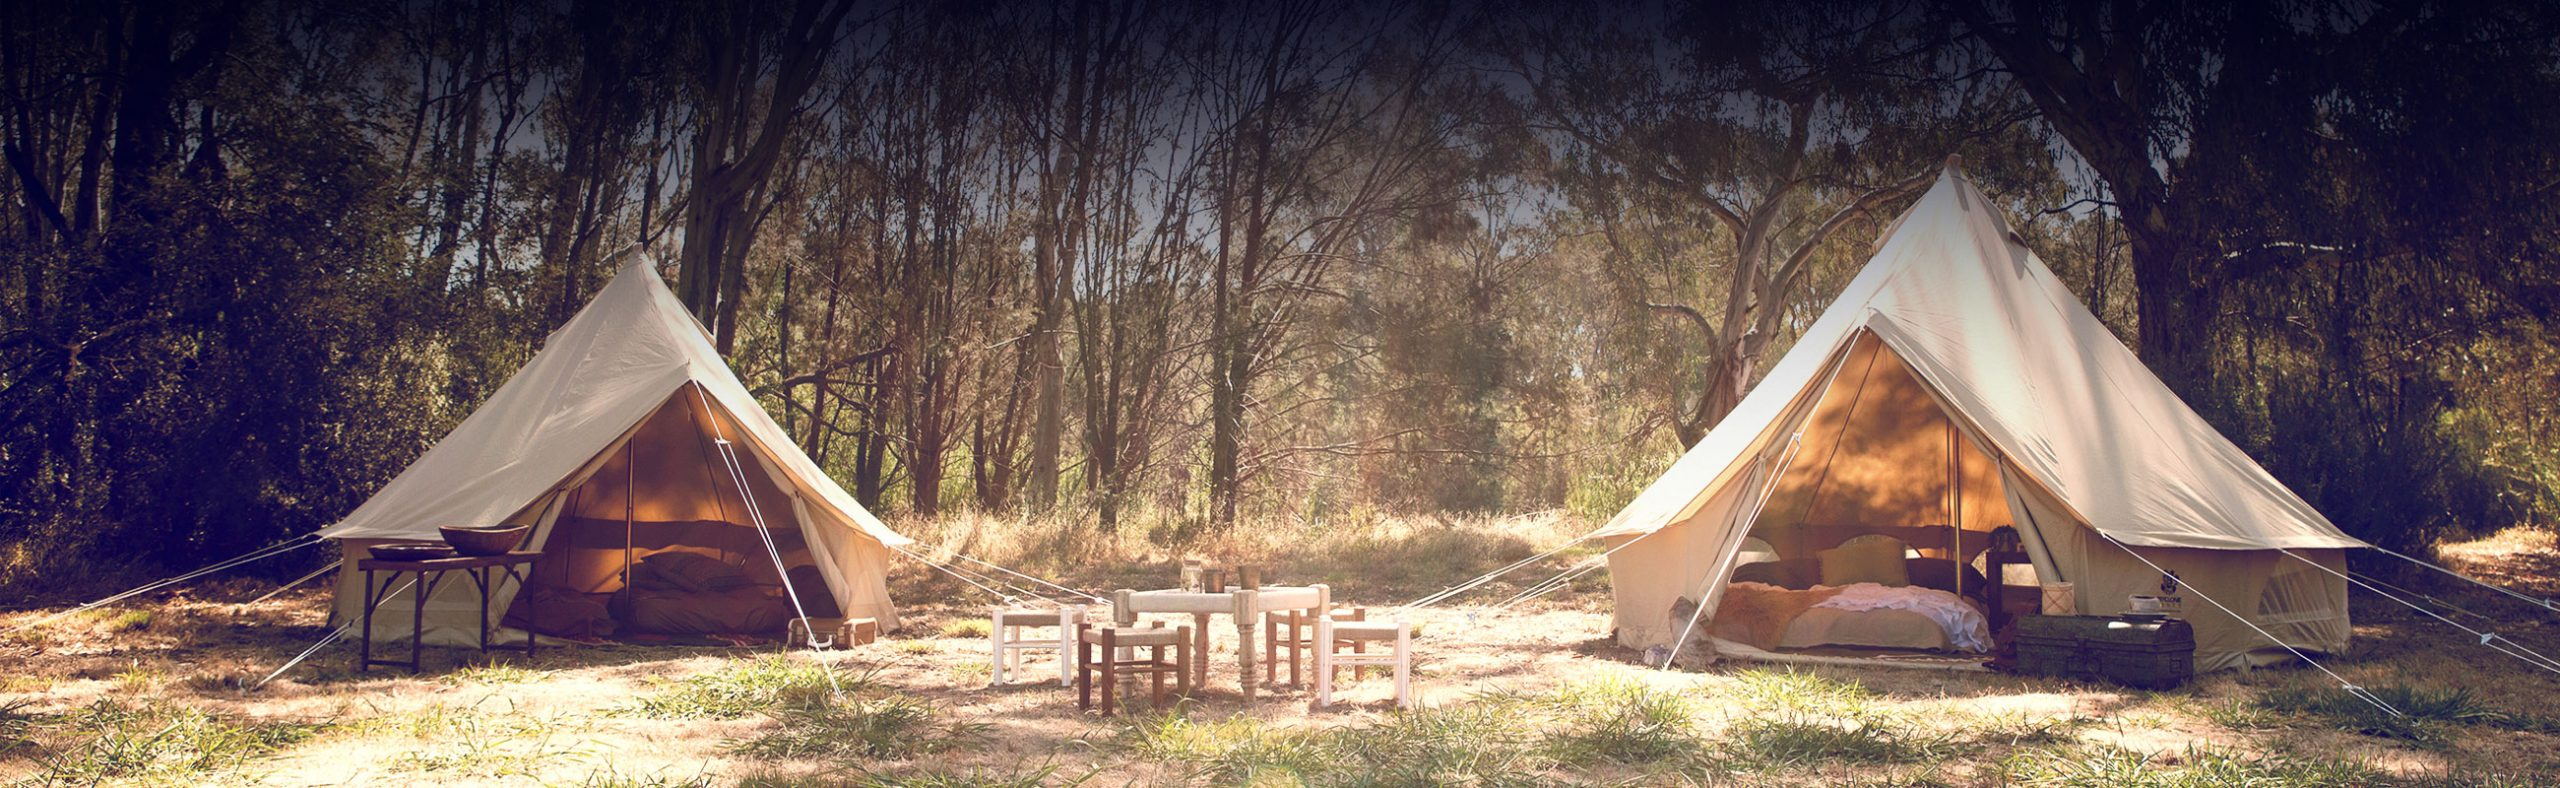 Psyclone Tents - Campsite Setting High Quality Bell Tents